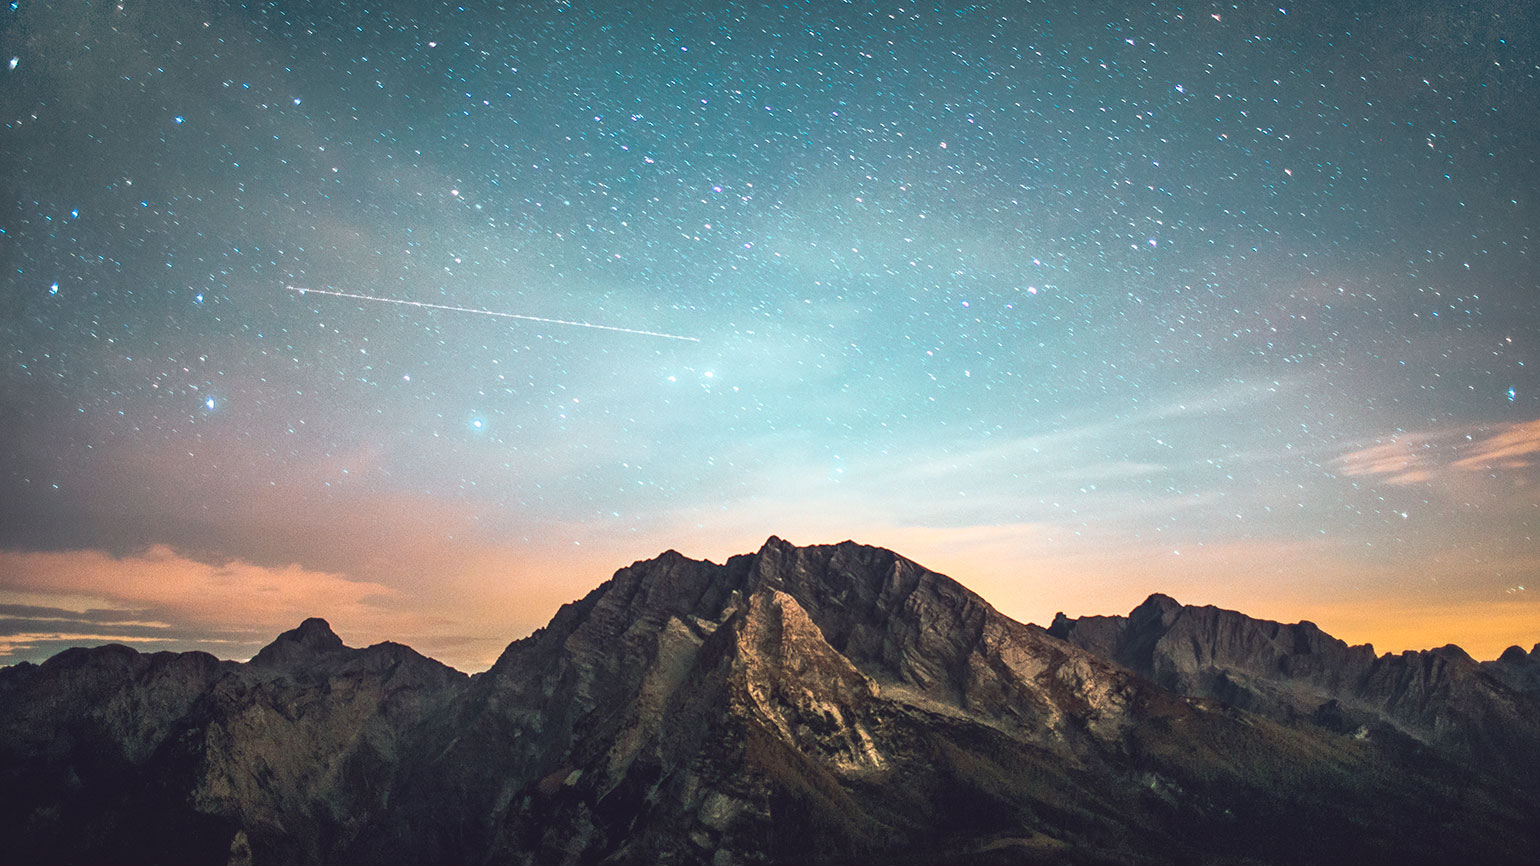 A starlit early-evening sky over a mountain